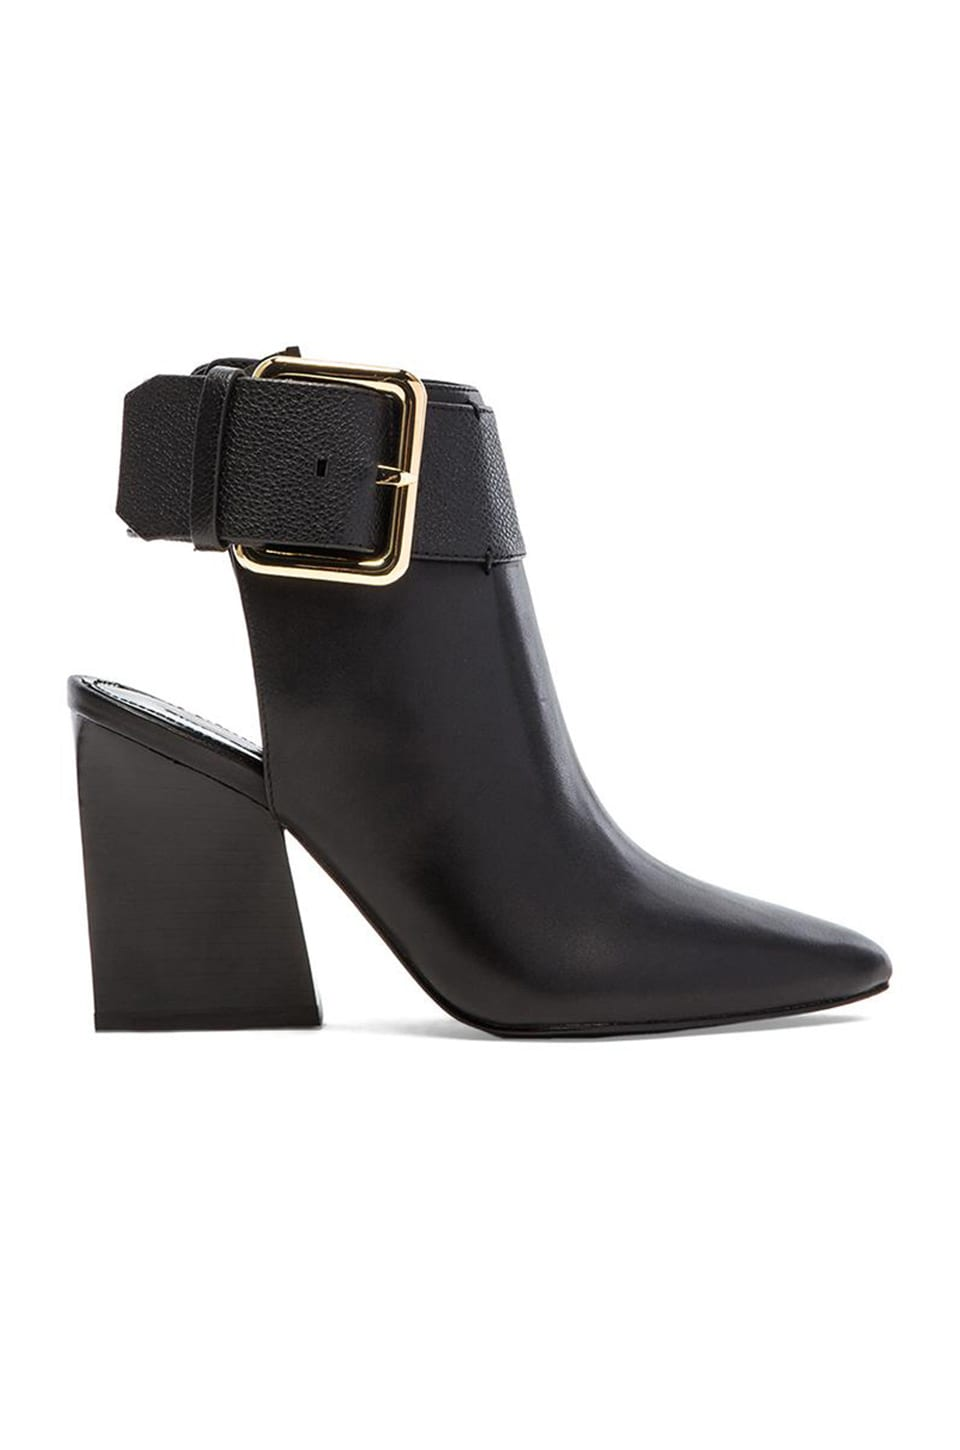 Sigerson Morrison Ice Bootie in Black